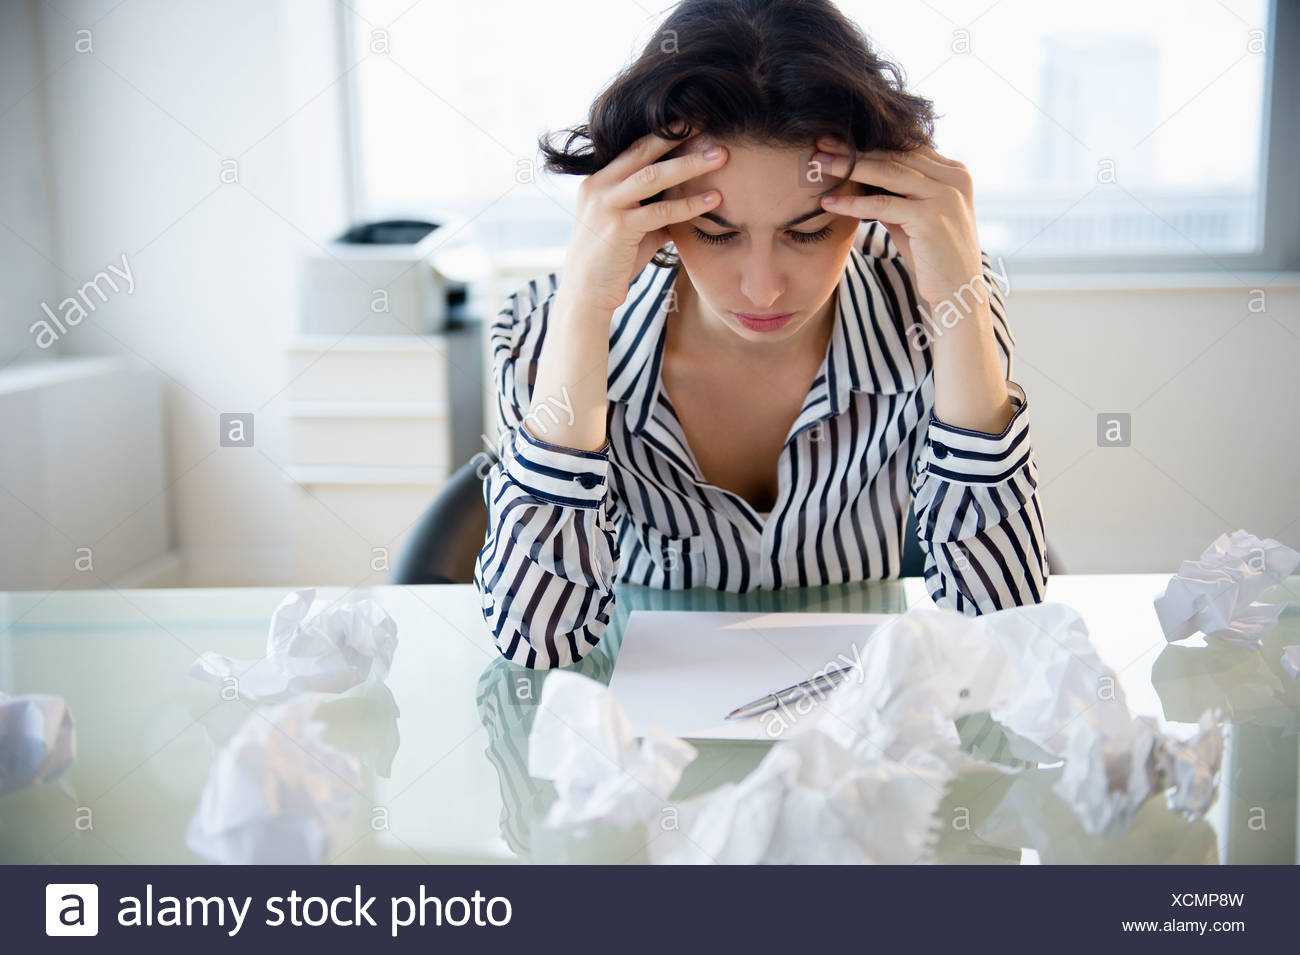 Overworked businesswoman sitting at desk - Stock Image